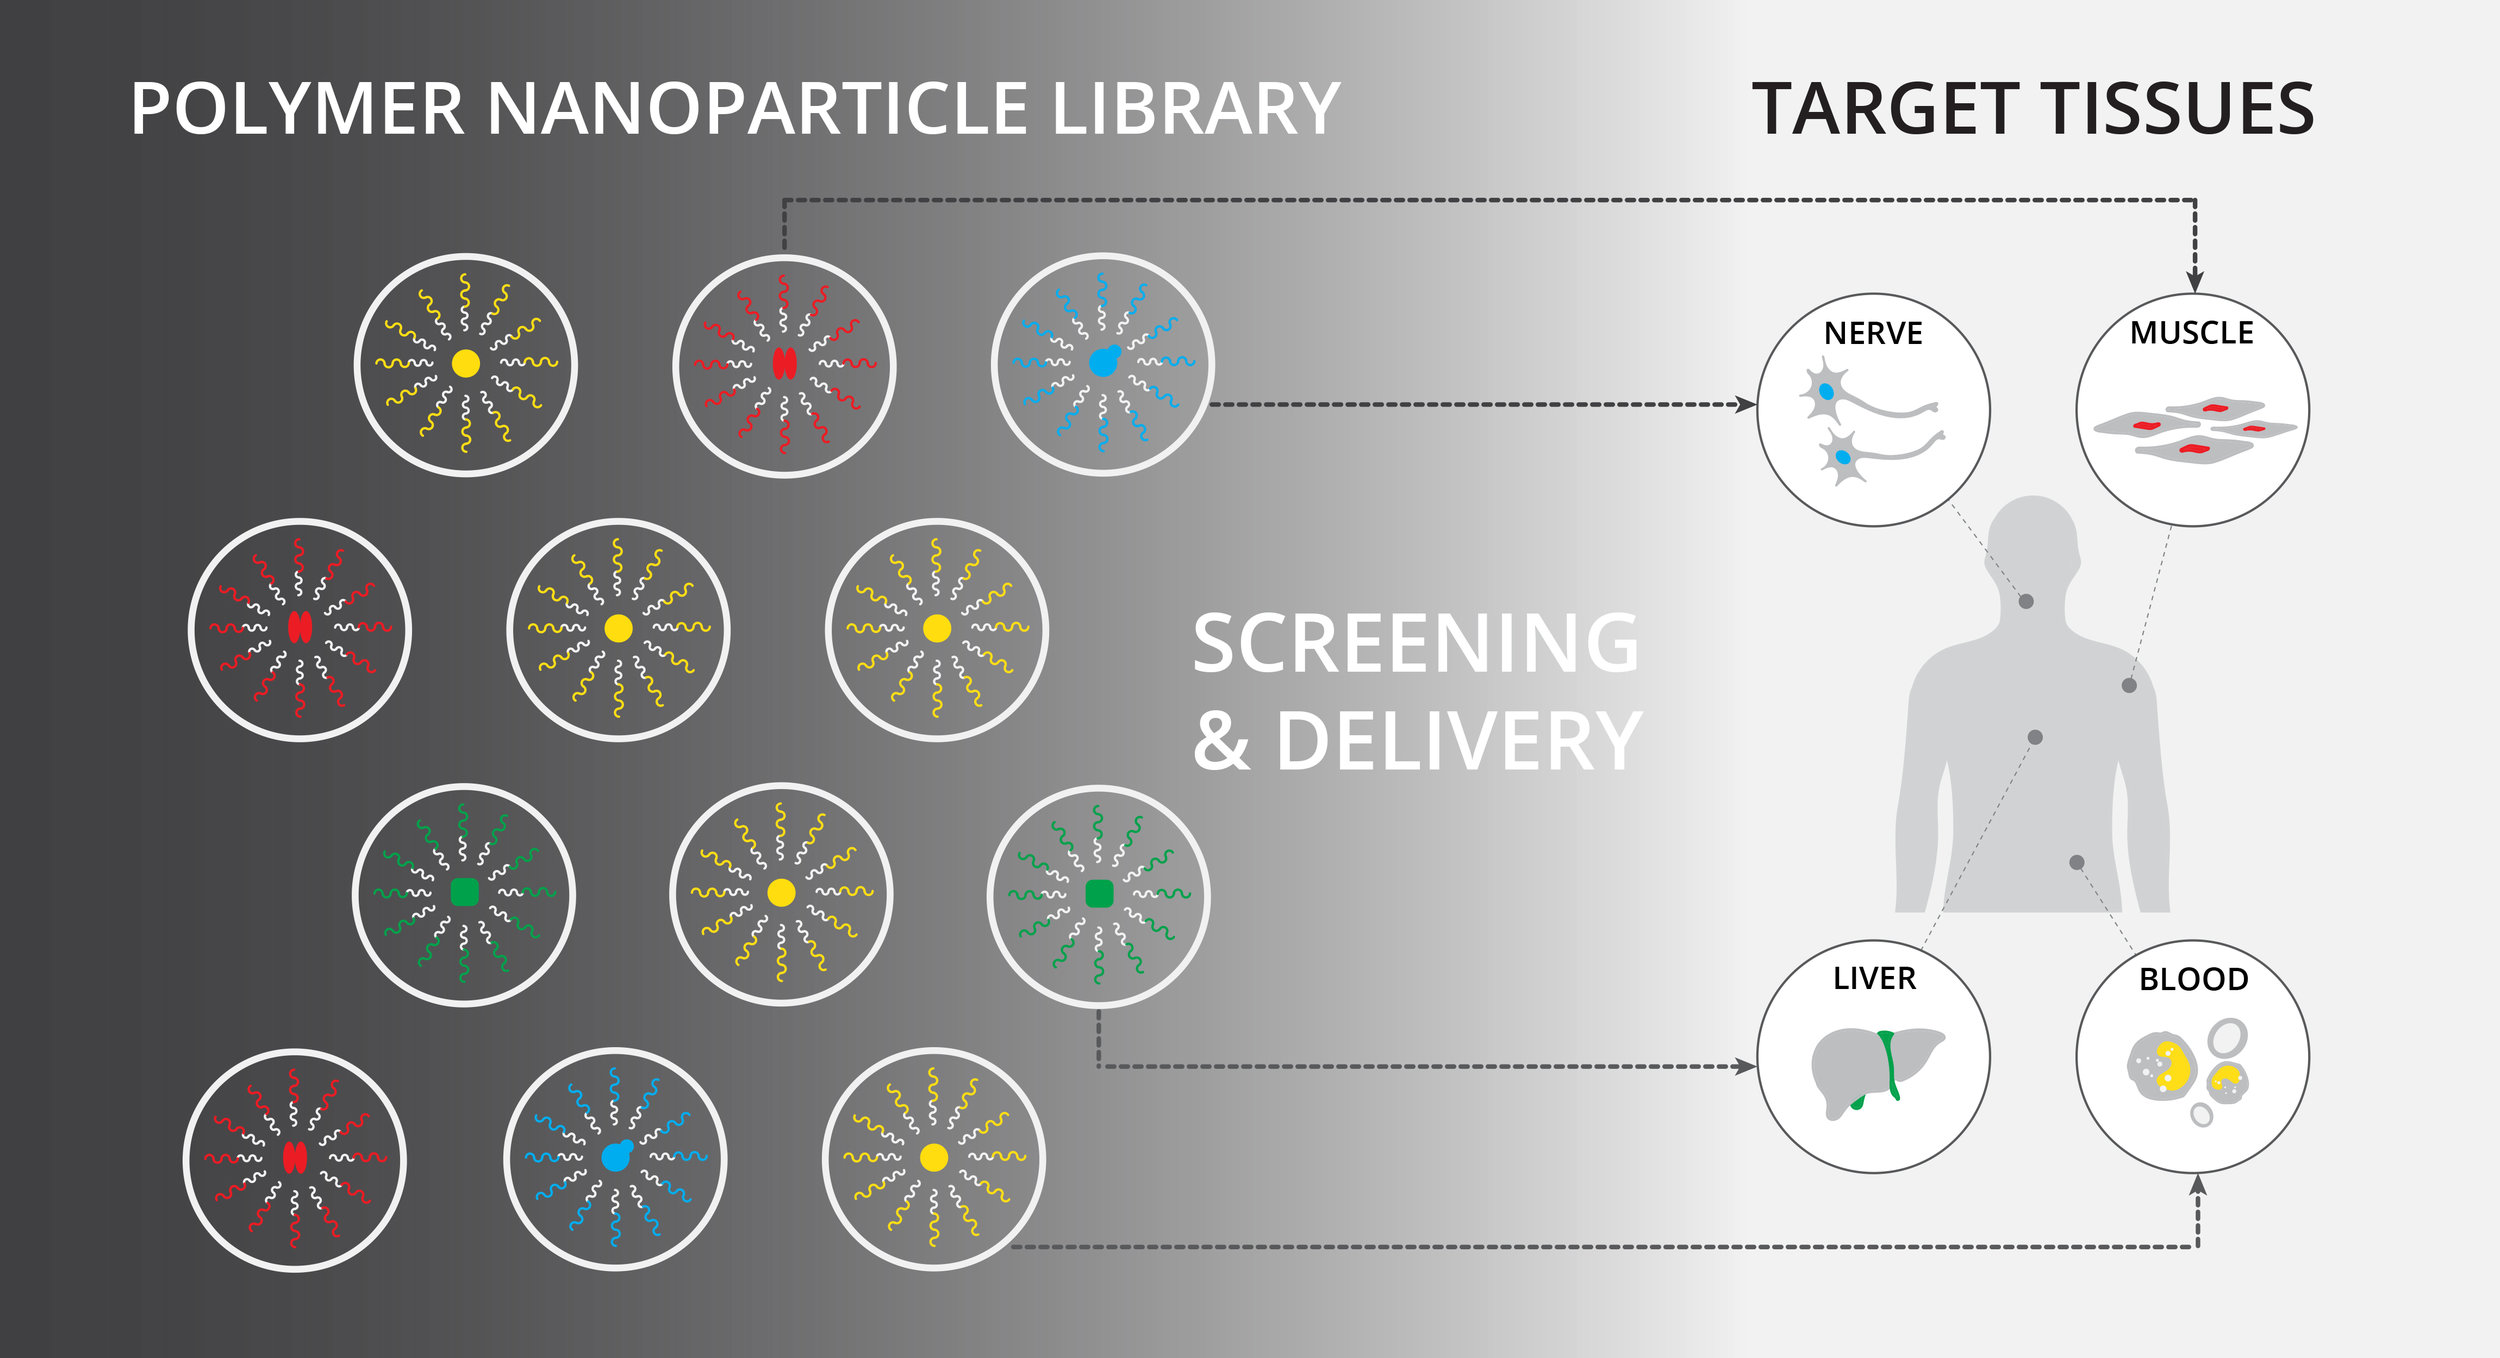 Nanoparticle_Screening_v2.jpg